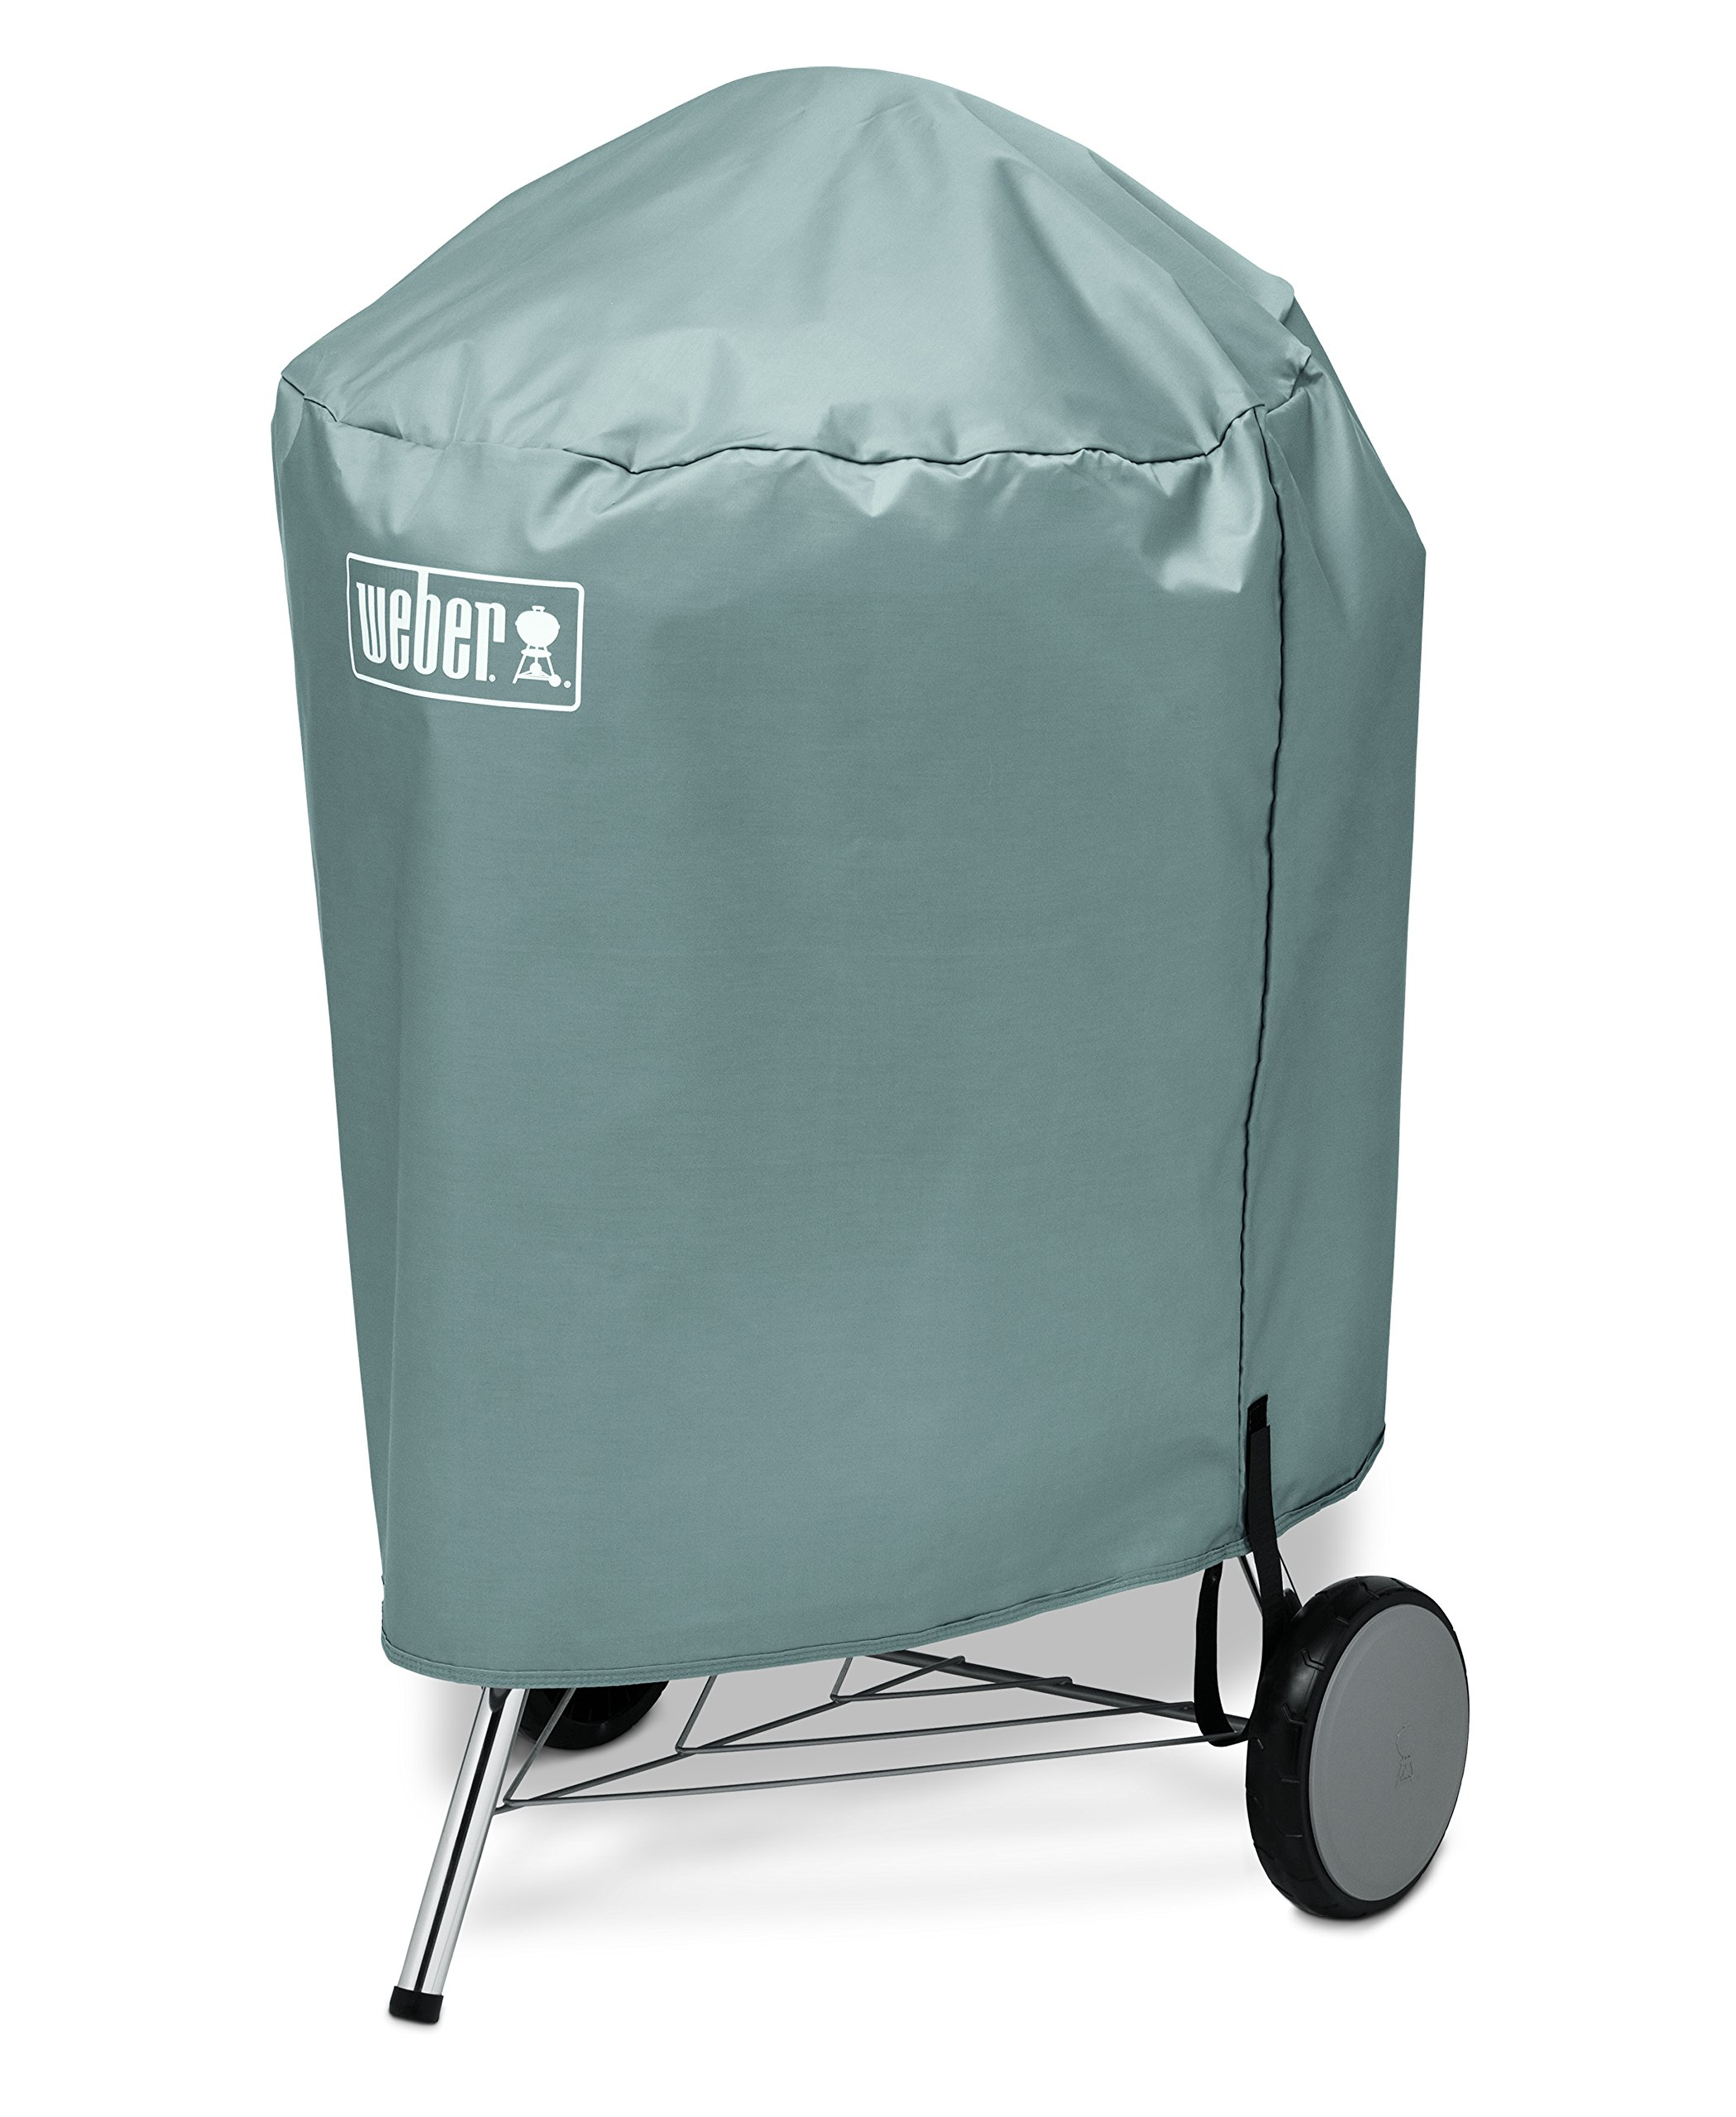 Weber 7176 22 Inch Charcoal Kettle Grill Cover by Weber